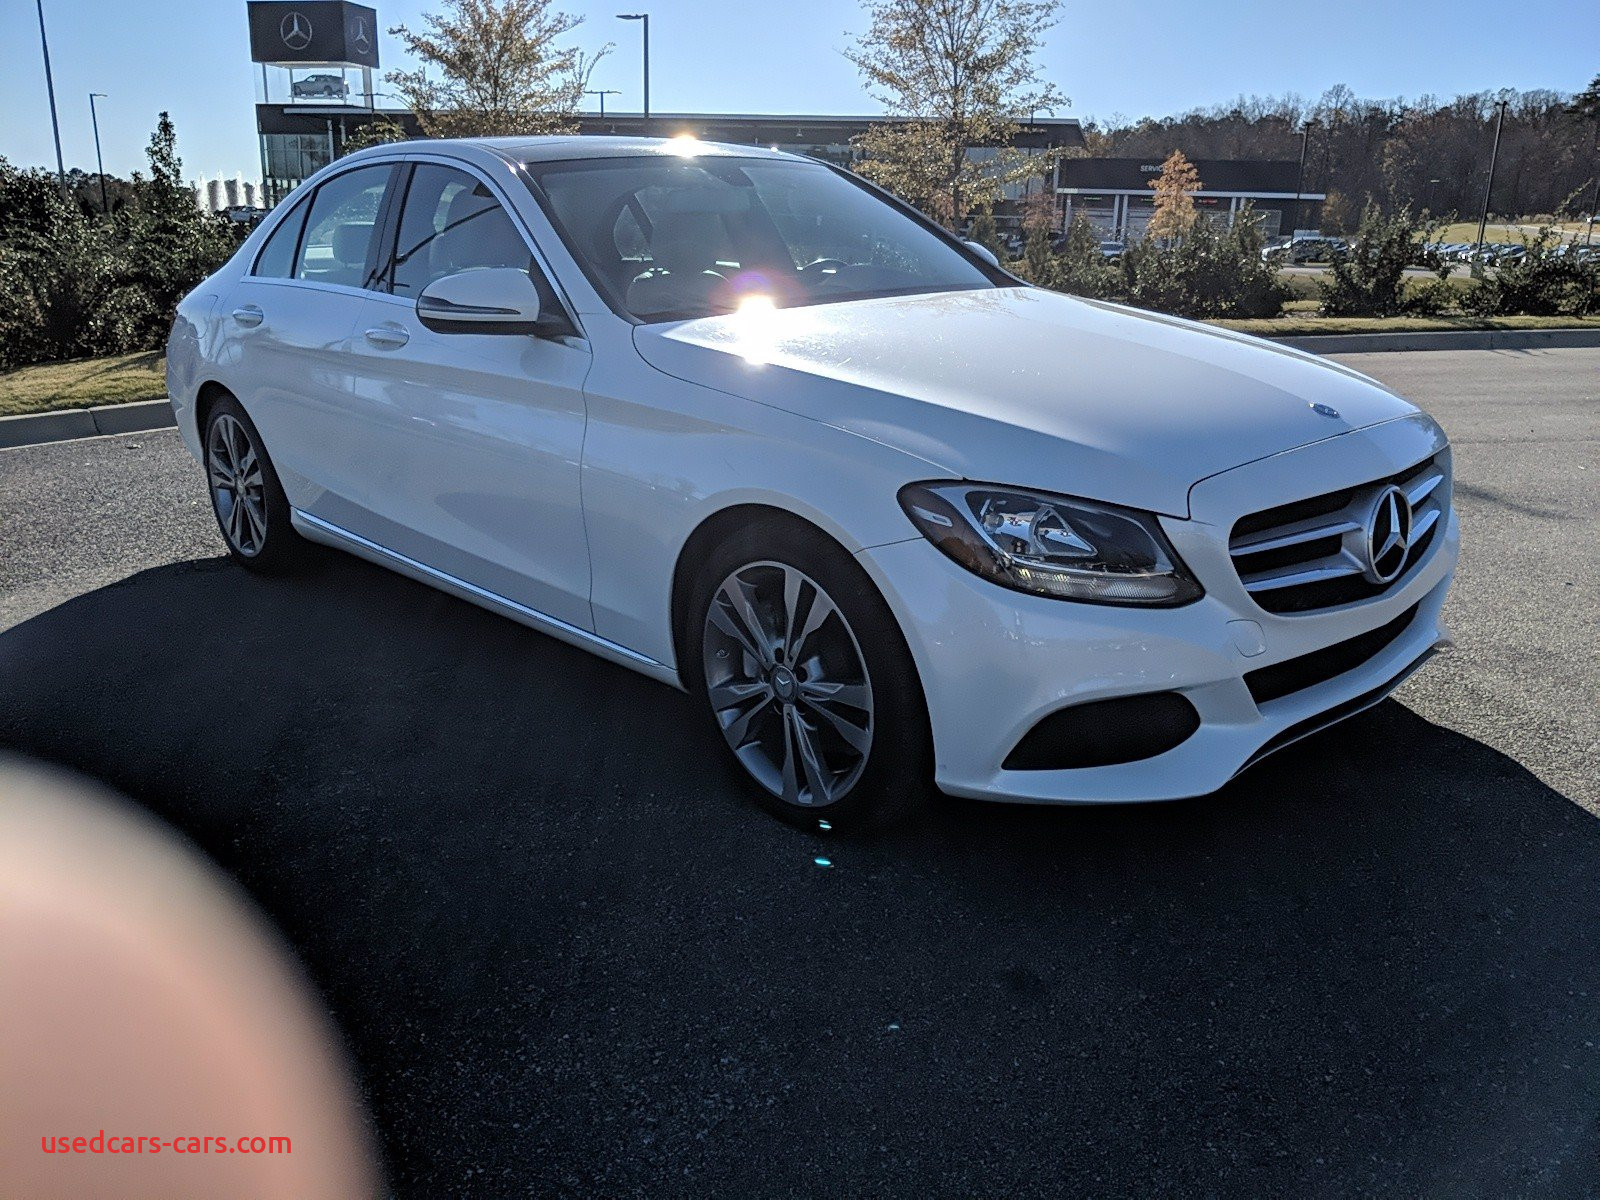 Used Cars for Sale Mobile Al Fresh 68 Certified Pre Owned Mercedes Benz